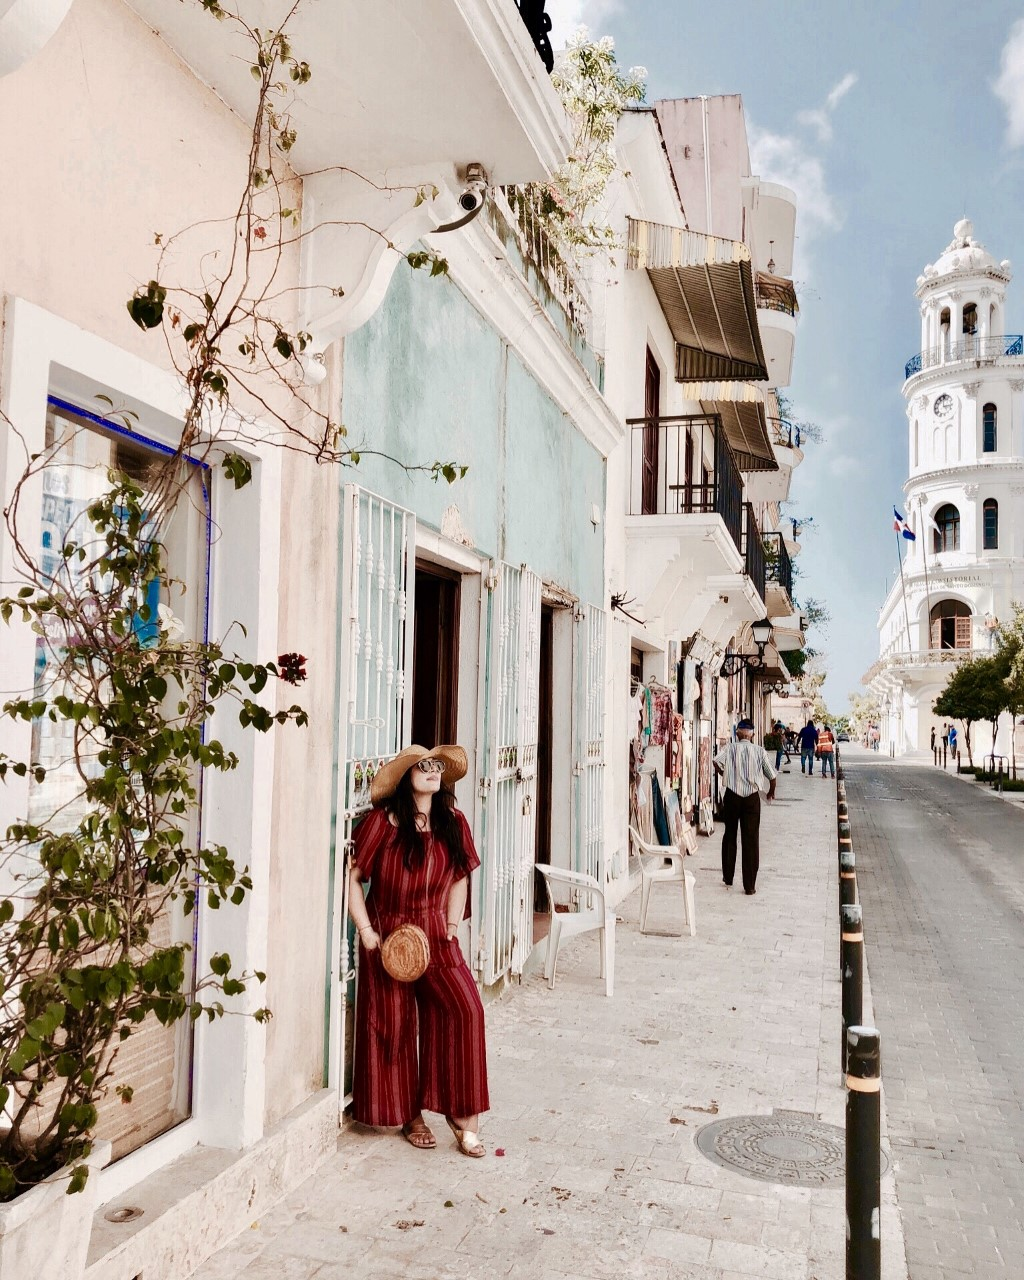 SANTO DOMINGO - The Dominican's republic capital is filled with culture, food & local life. The colonial Zone also known as the french quarter is filled with old french architecture. Santo Domingo leads towards churches, museums, shops and art galleries.